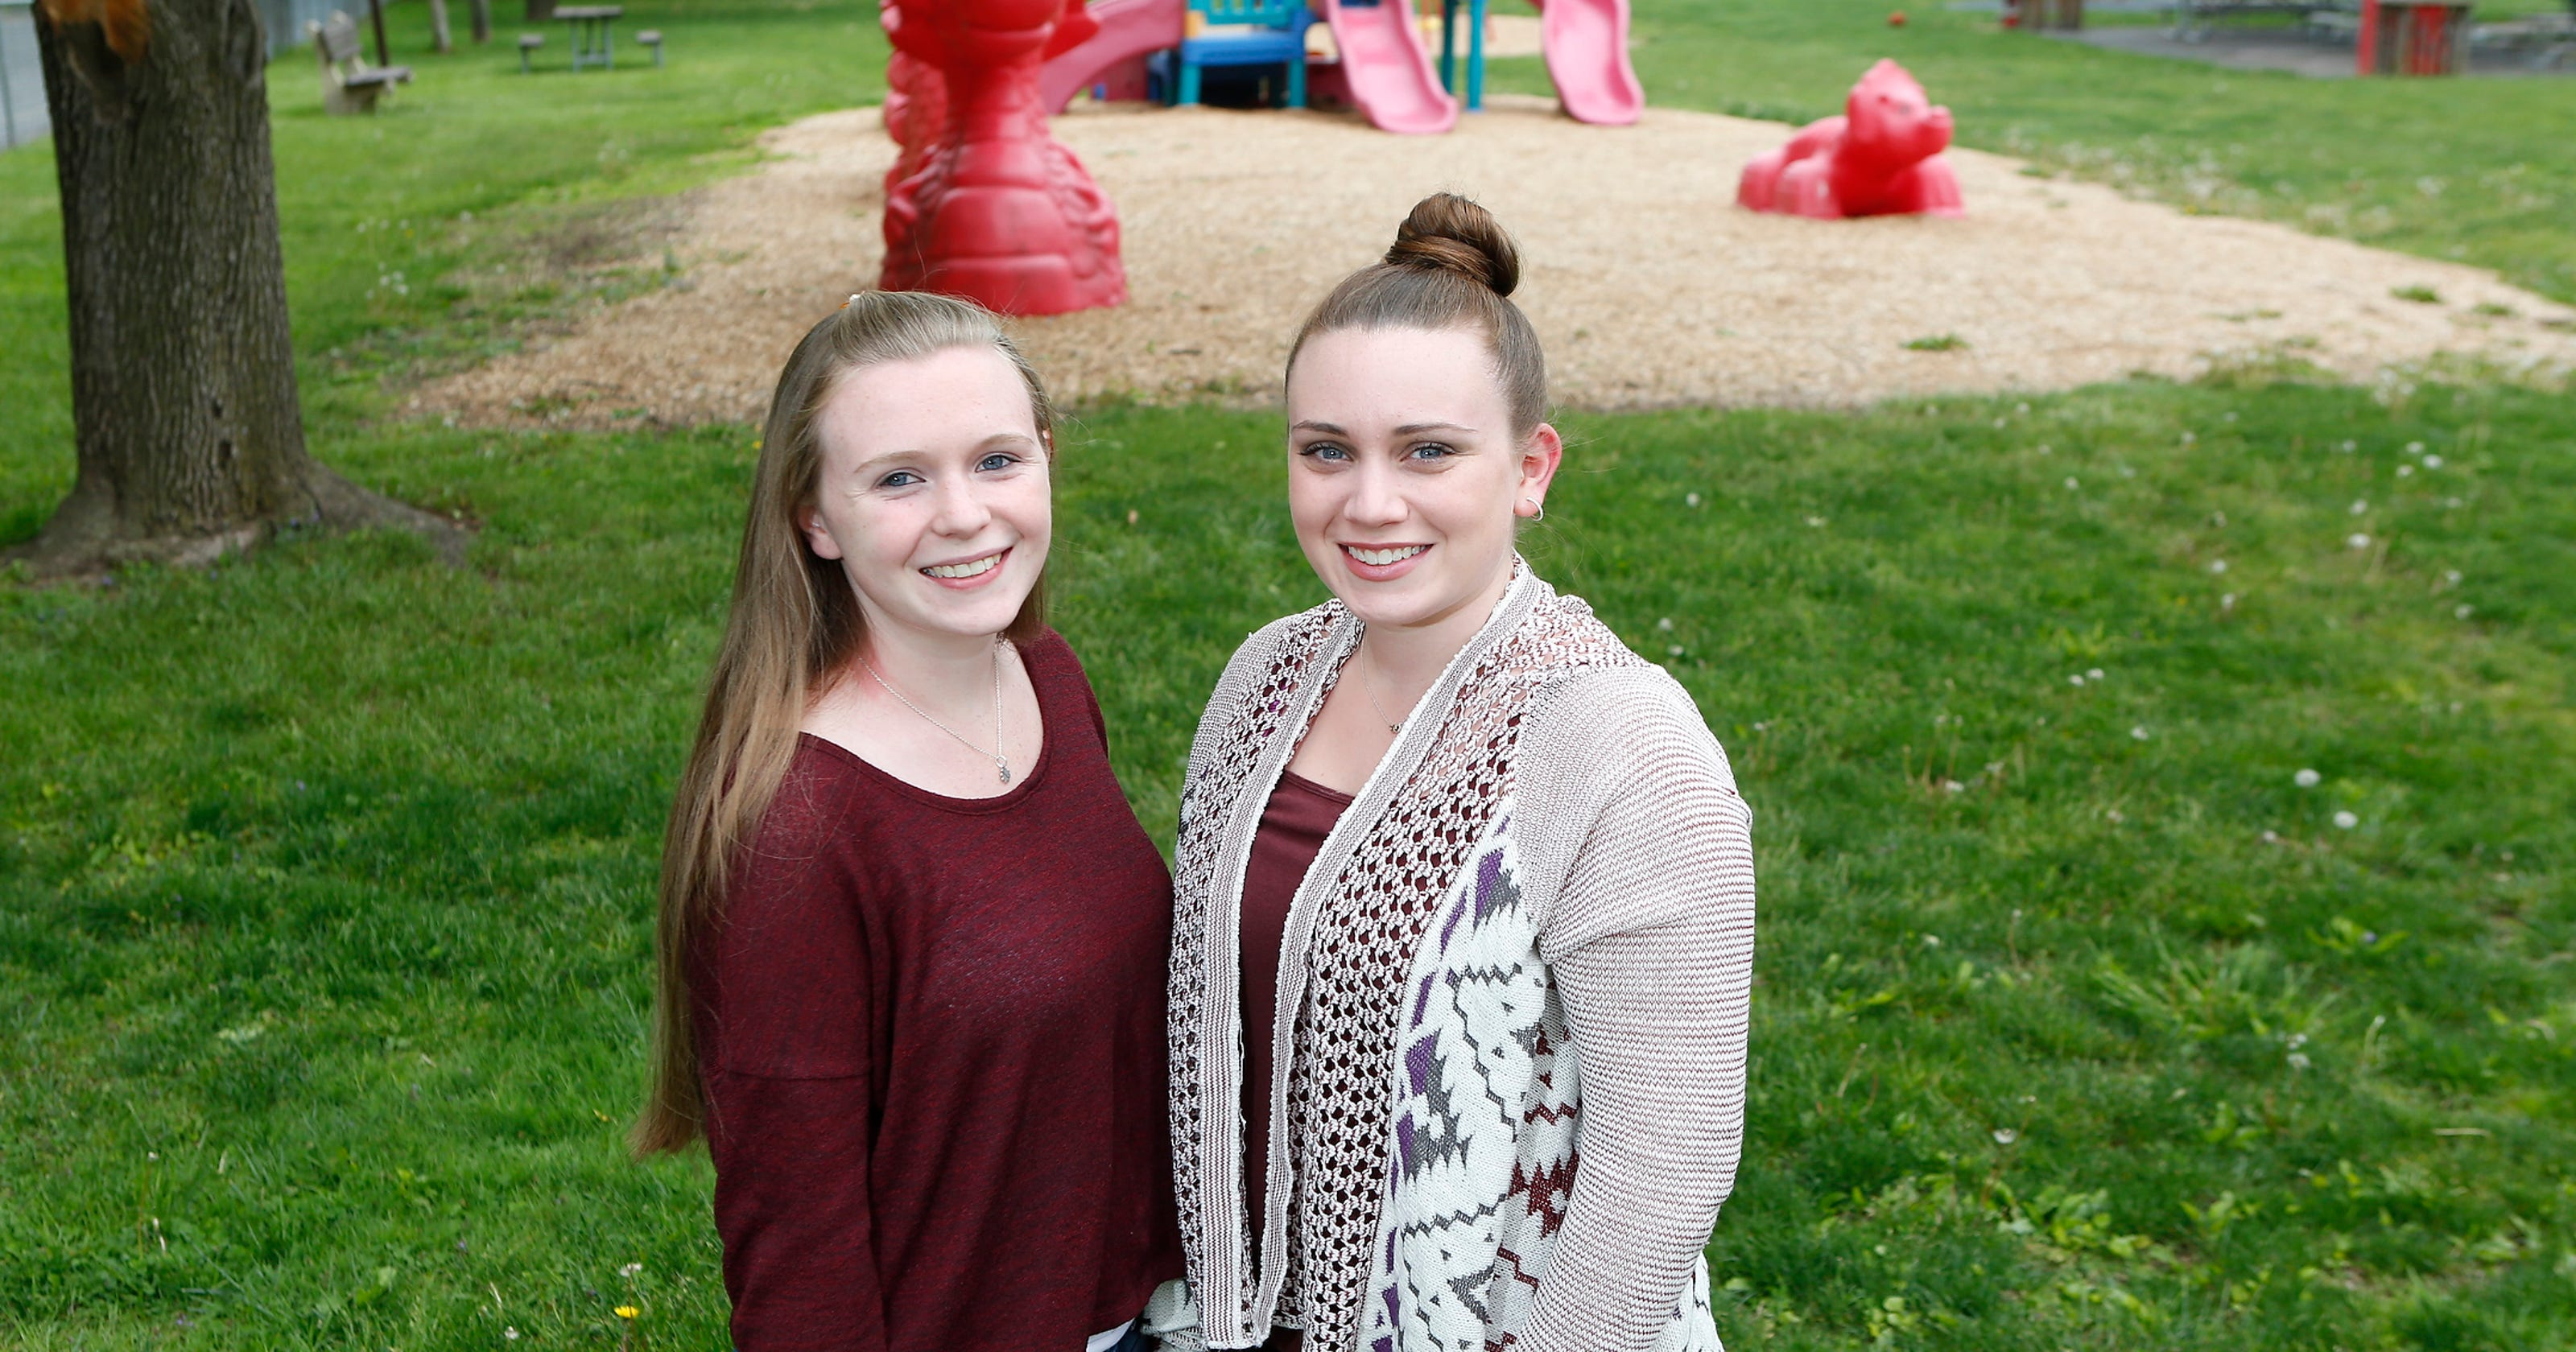 915fbc399 Rockland s Casey sisters help make parks more inclusive